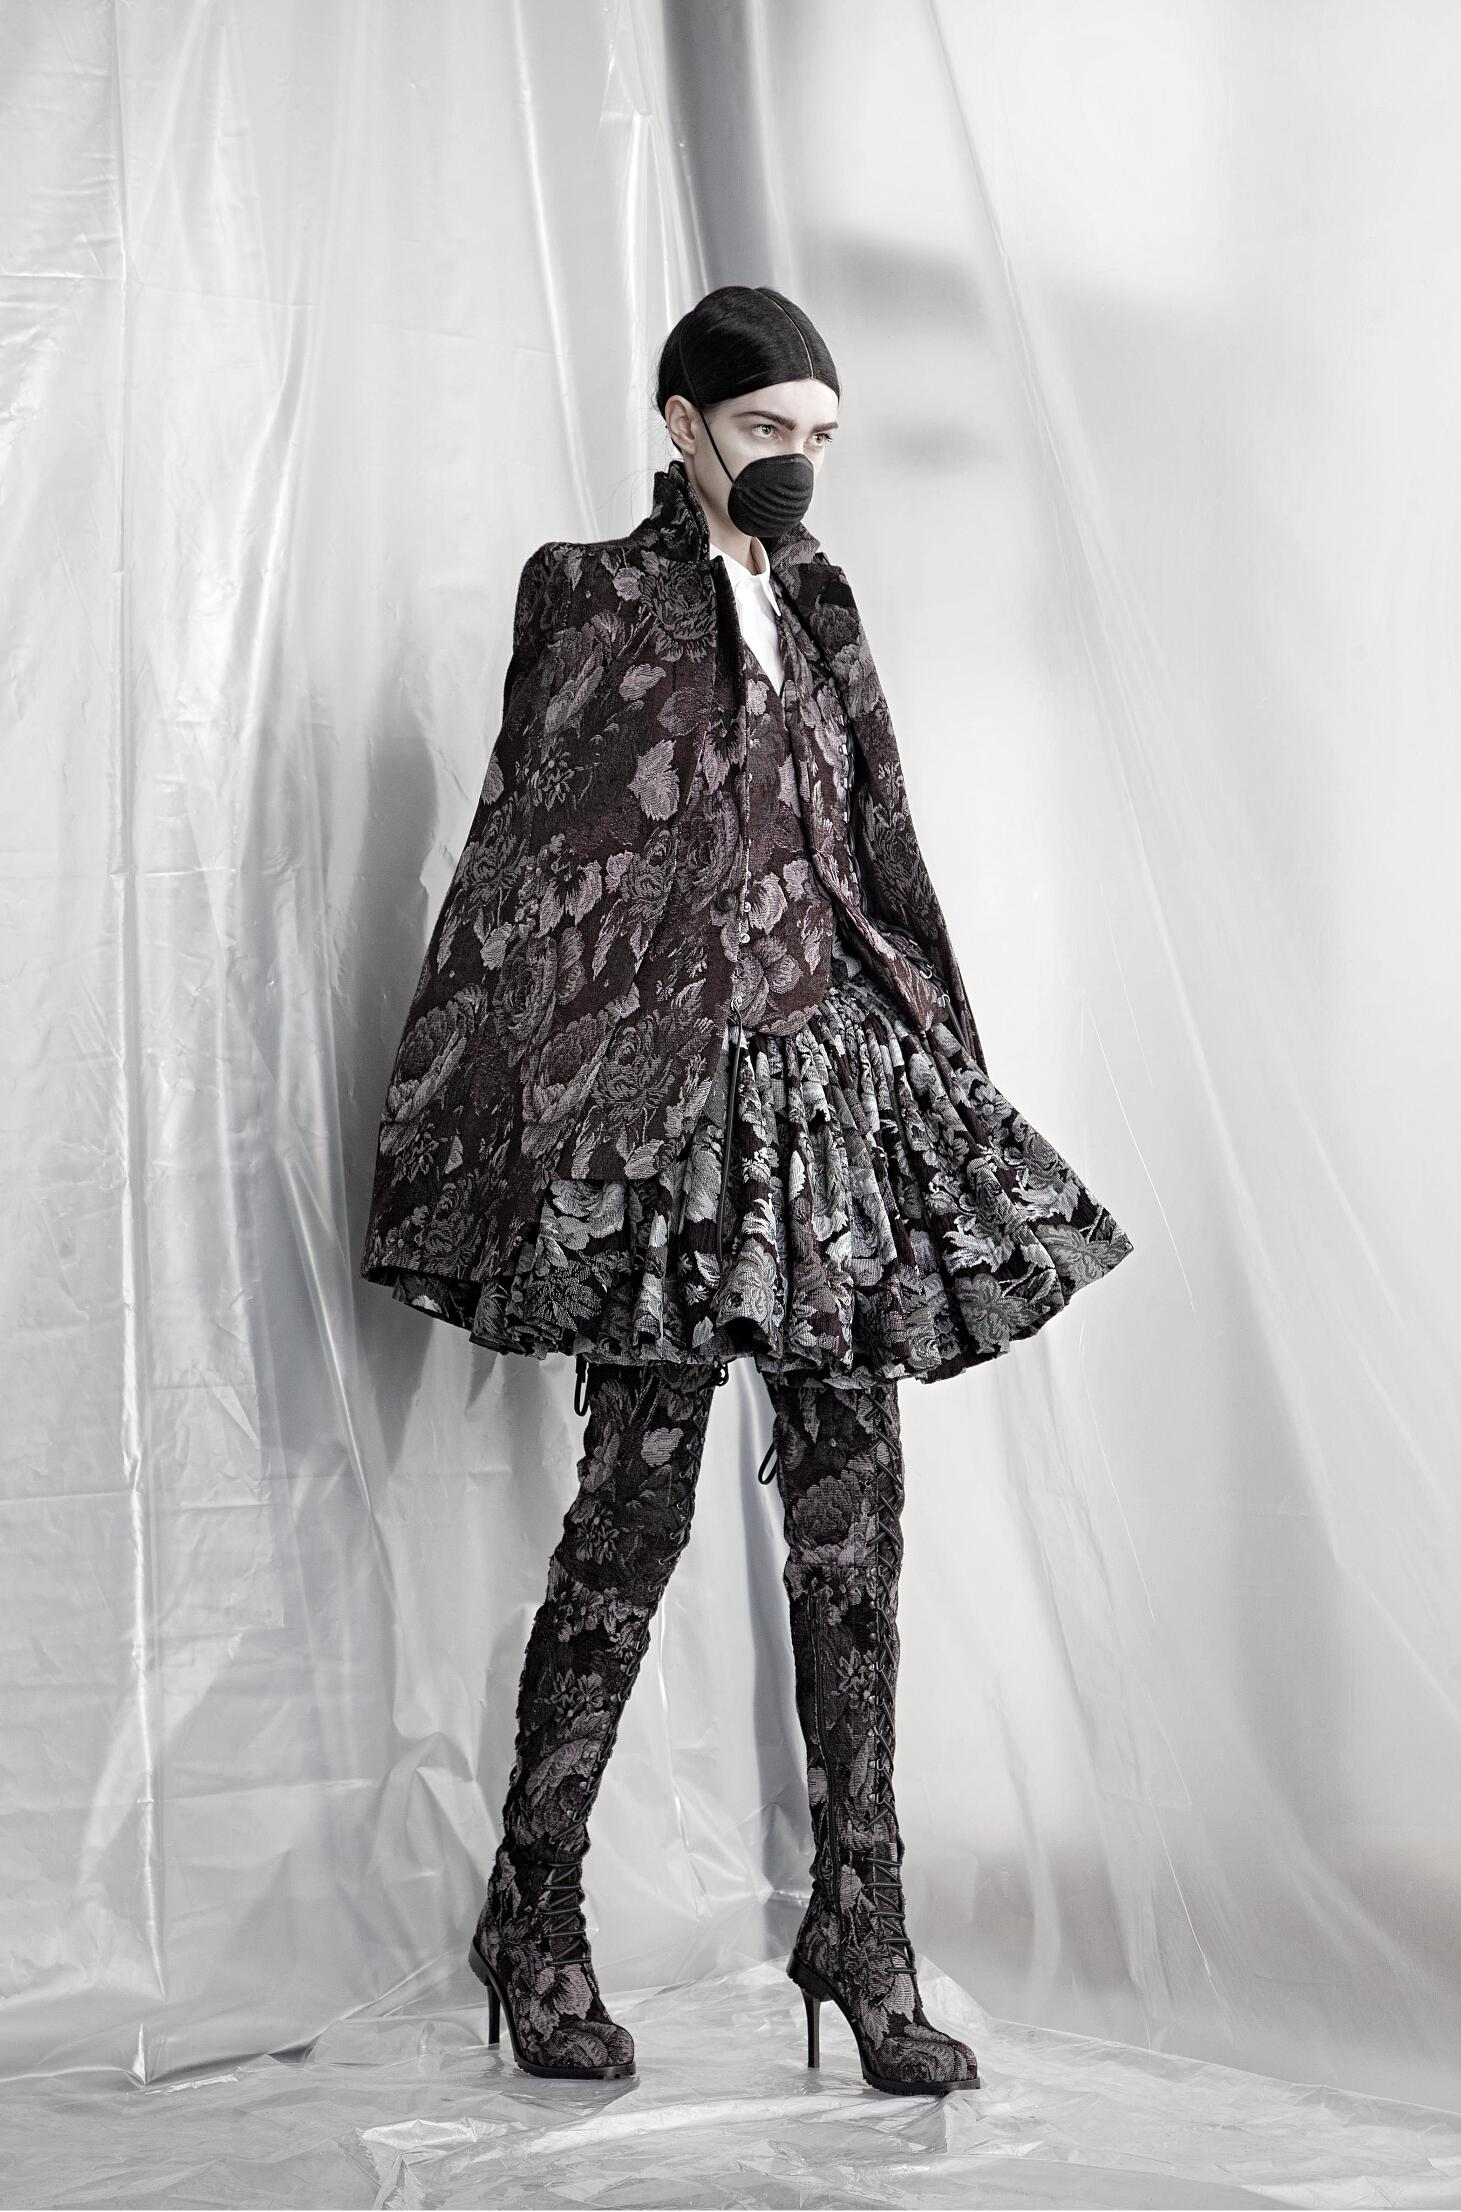 Catwalk A.F. Vandevorst Womenswear Collection Winter 2015